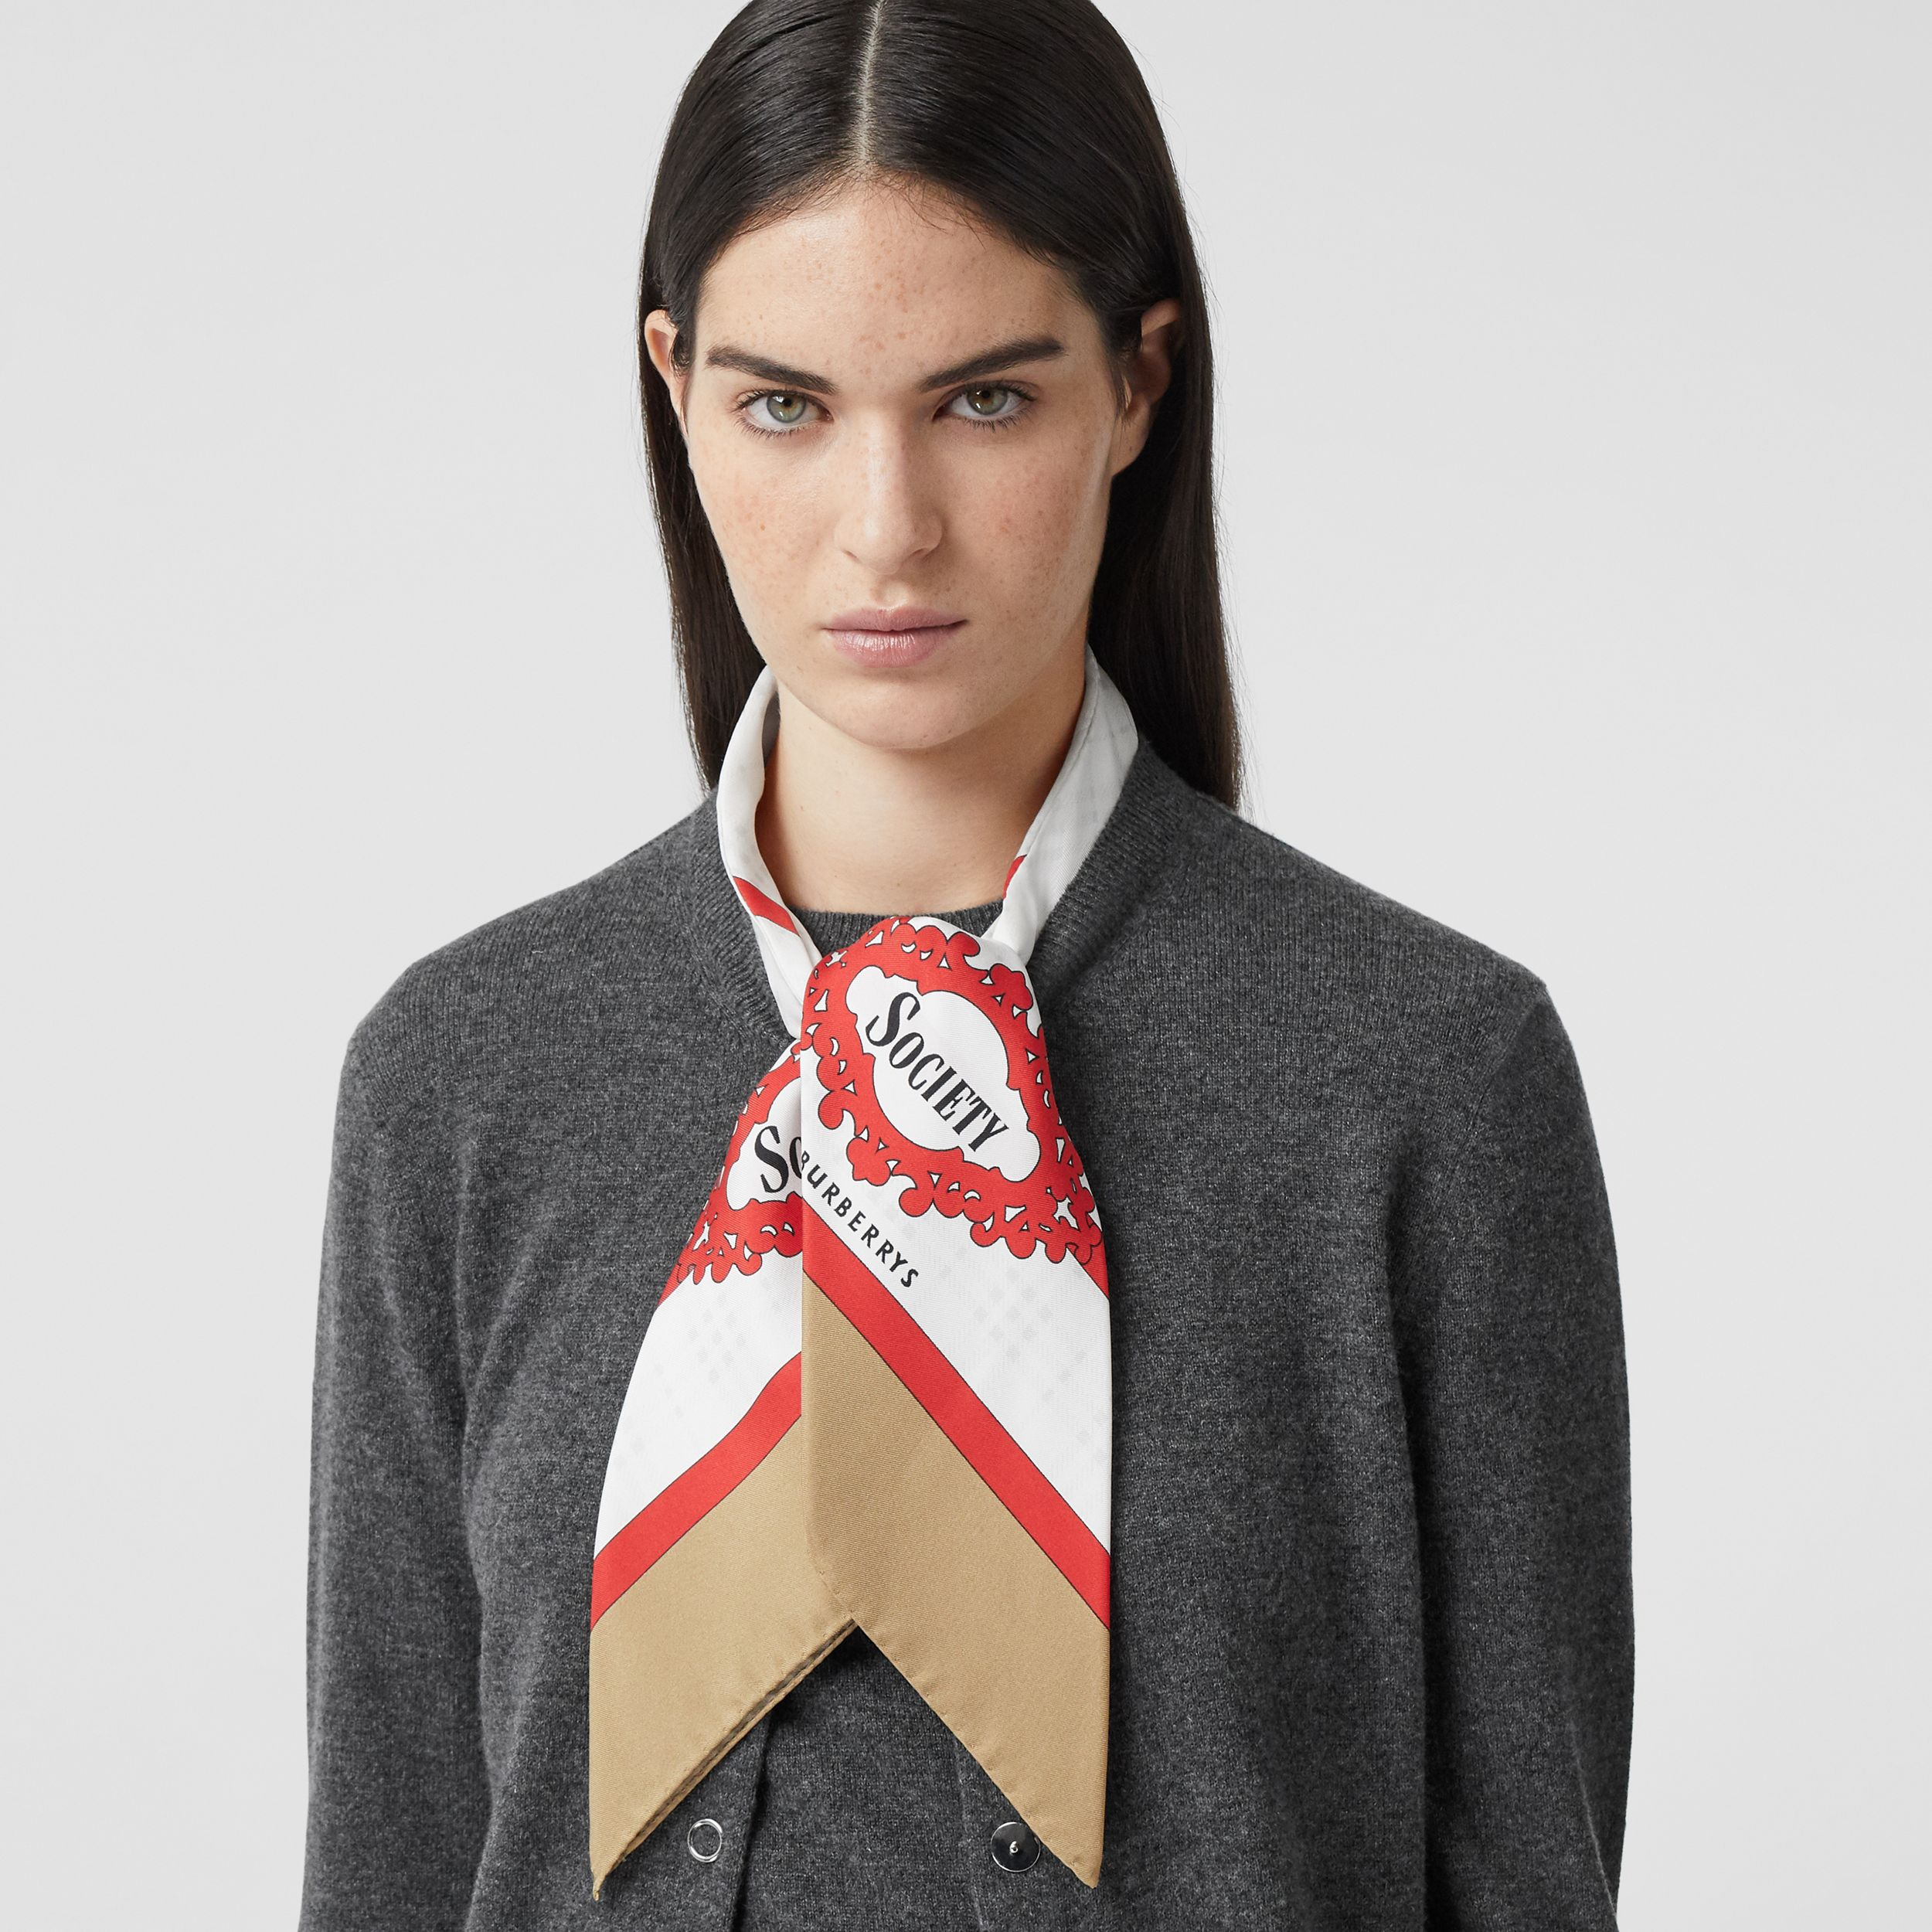 Silk Scarf Detail Cashmere Cardigan in Grey Melange - Women | Burberry Hong Kong S.A.R. - 2